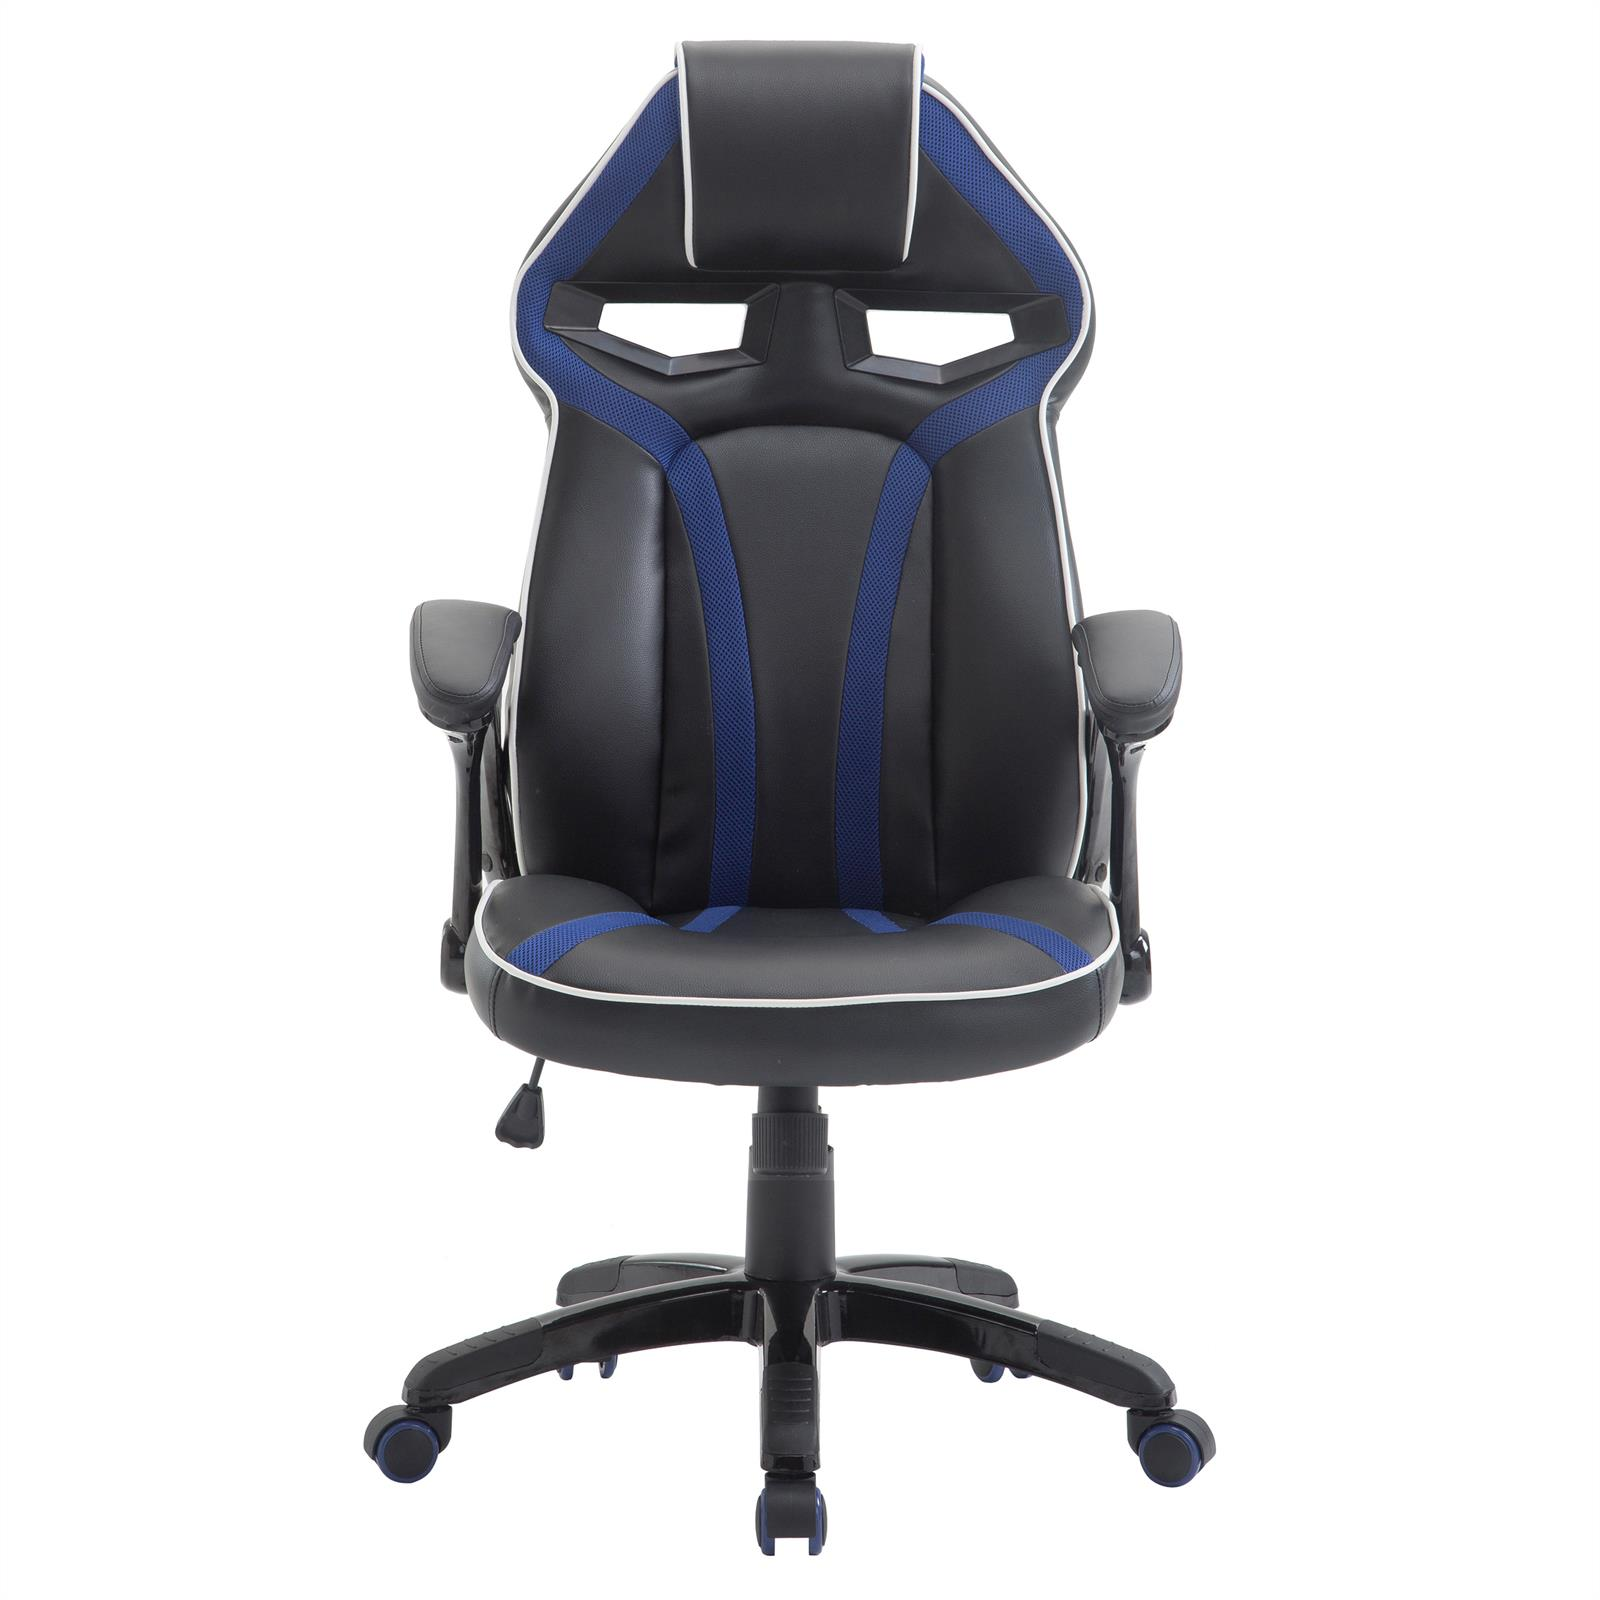 Guter Gaming Sessel Pc Stuhl Racing Awesome Mofe Racing Cockpit Fahrer